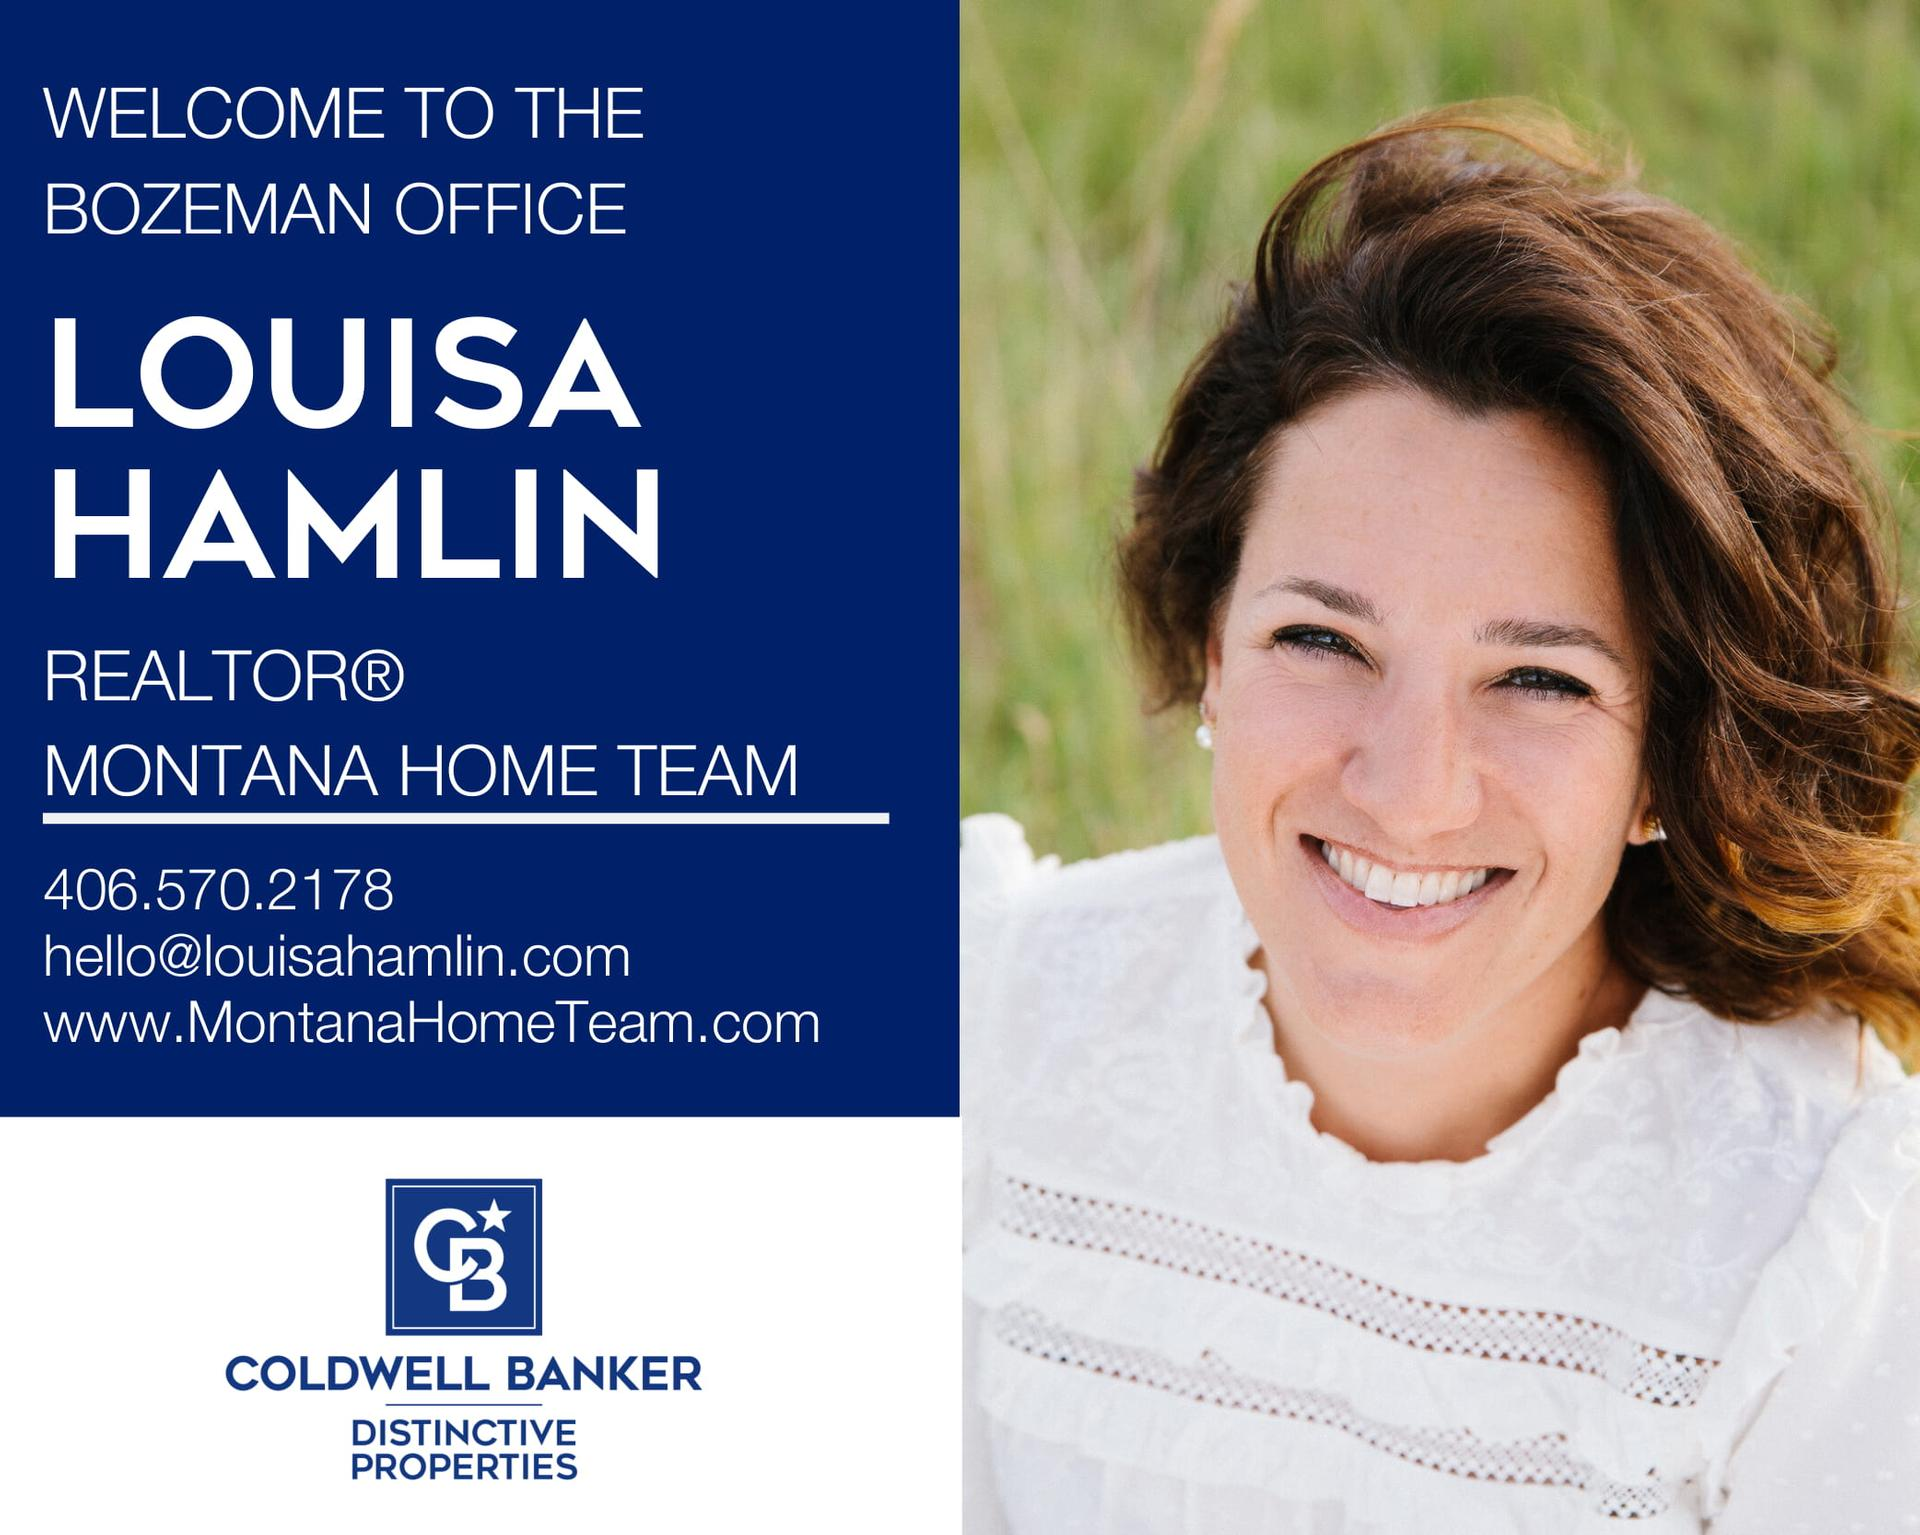 Please help us welcome Louisa Hamlin to our Coldwell Banker family! Main Photo